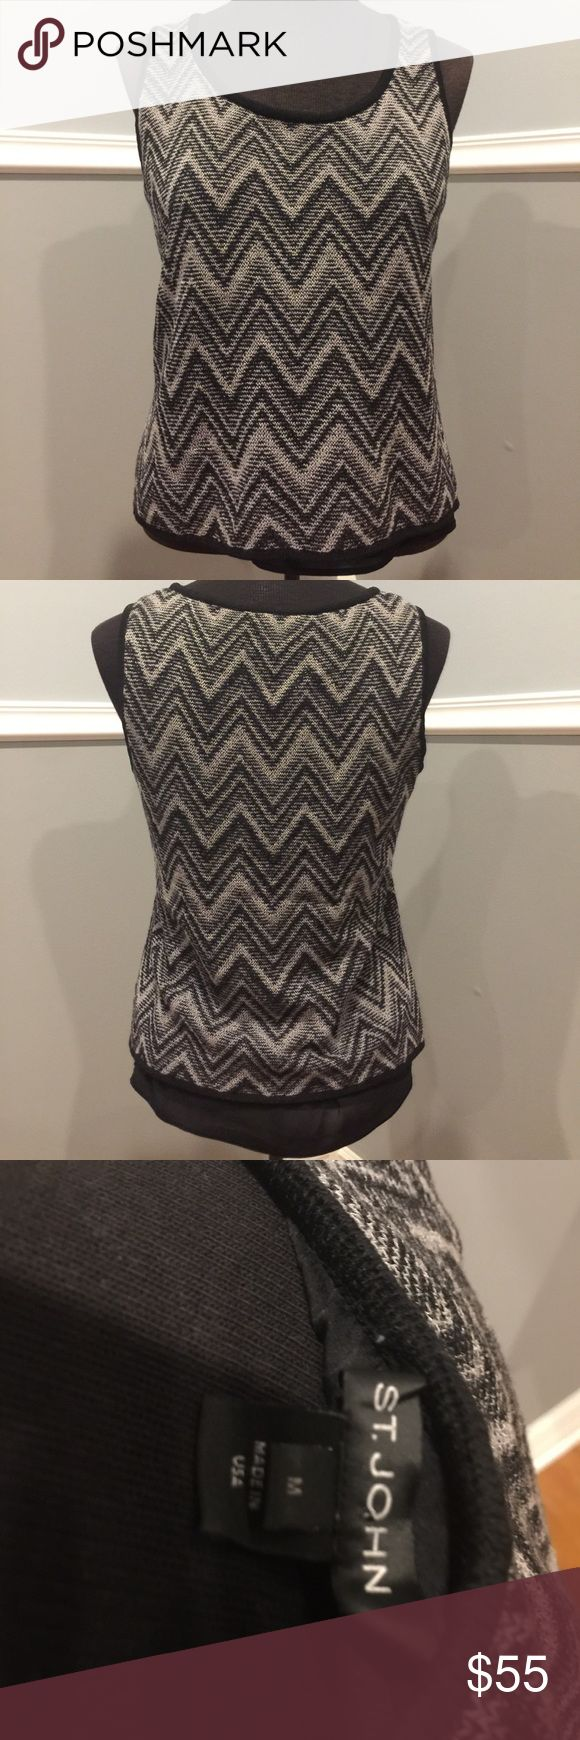 """🎀St. John Chevron top M Excellent condition lined top by St. John.  Bust 17"""" length 21"""" St. John Tops"""